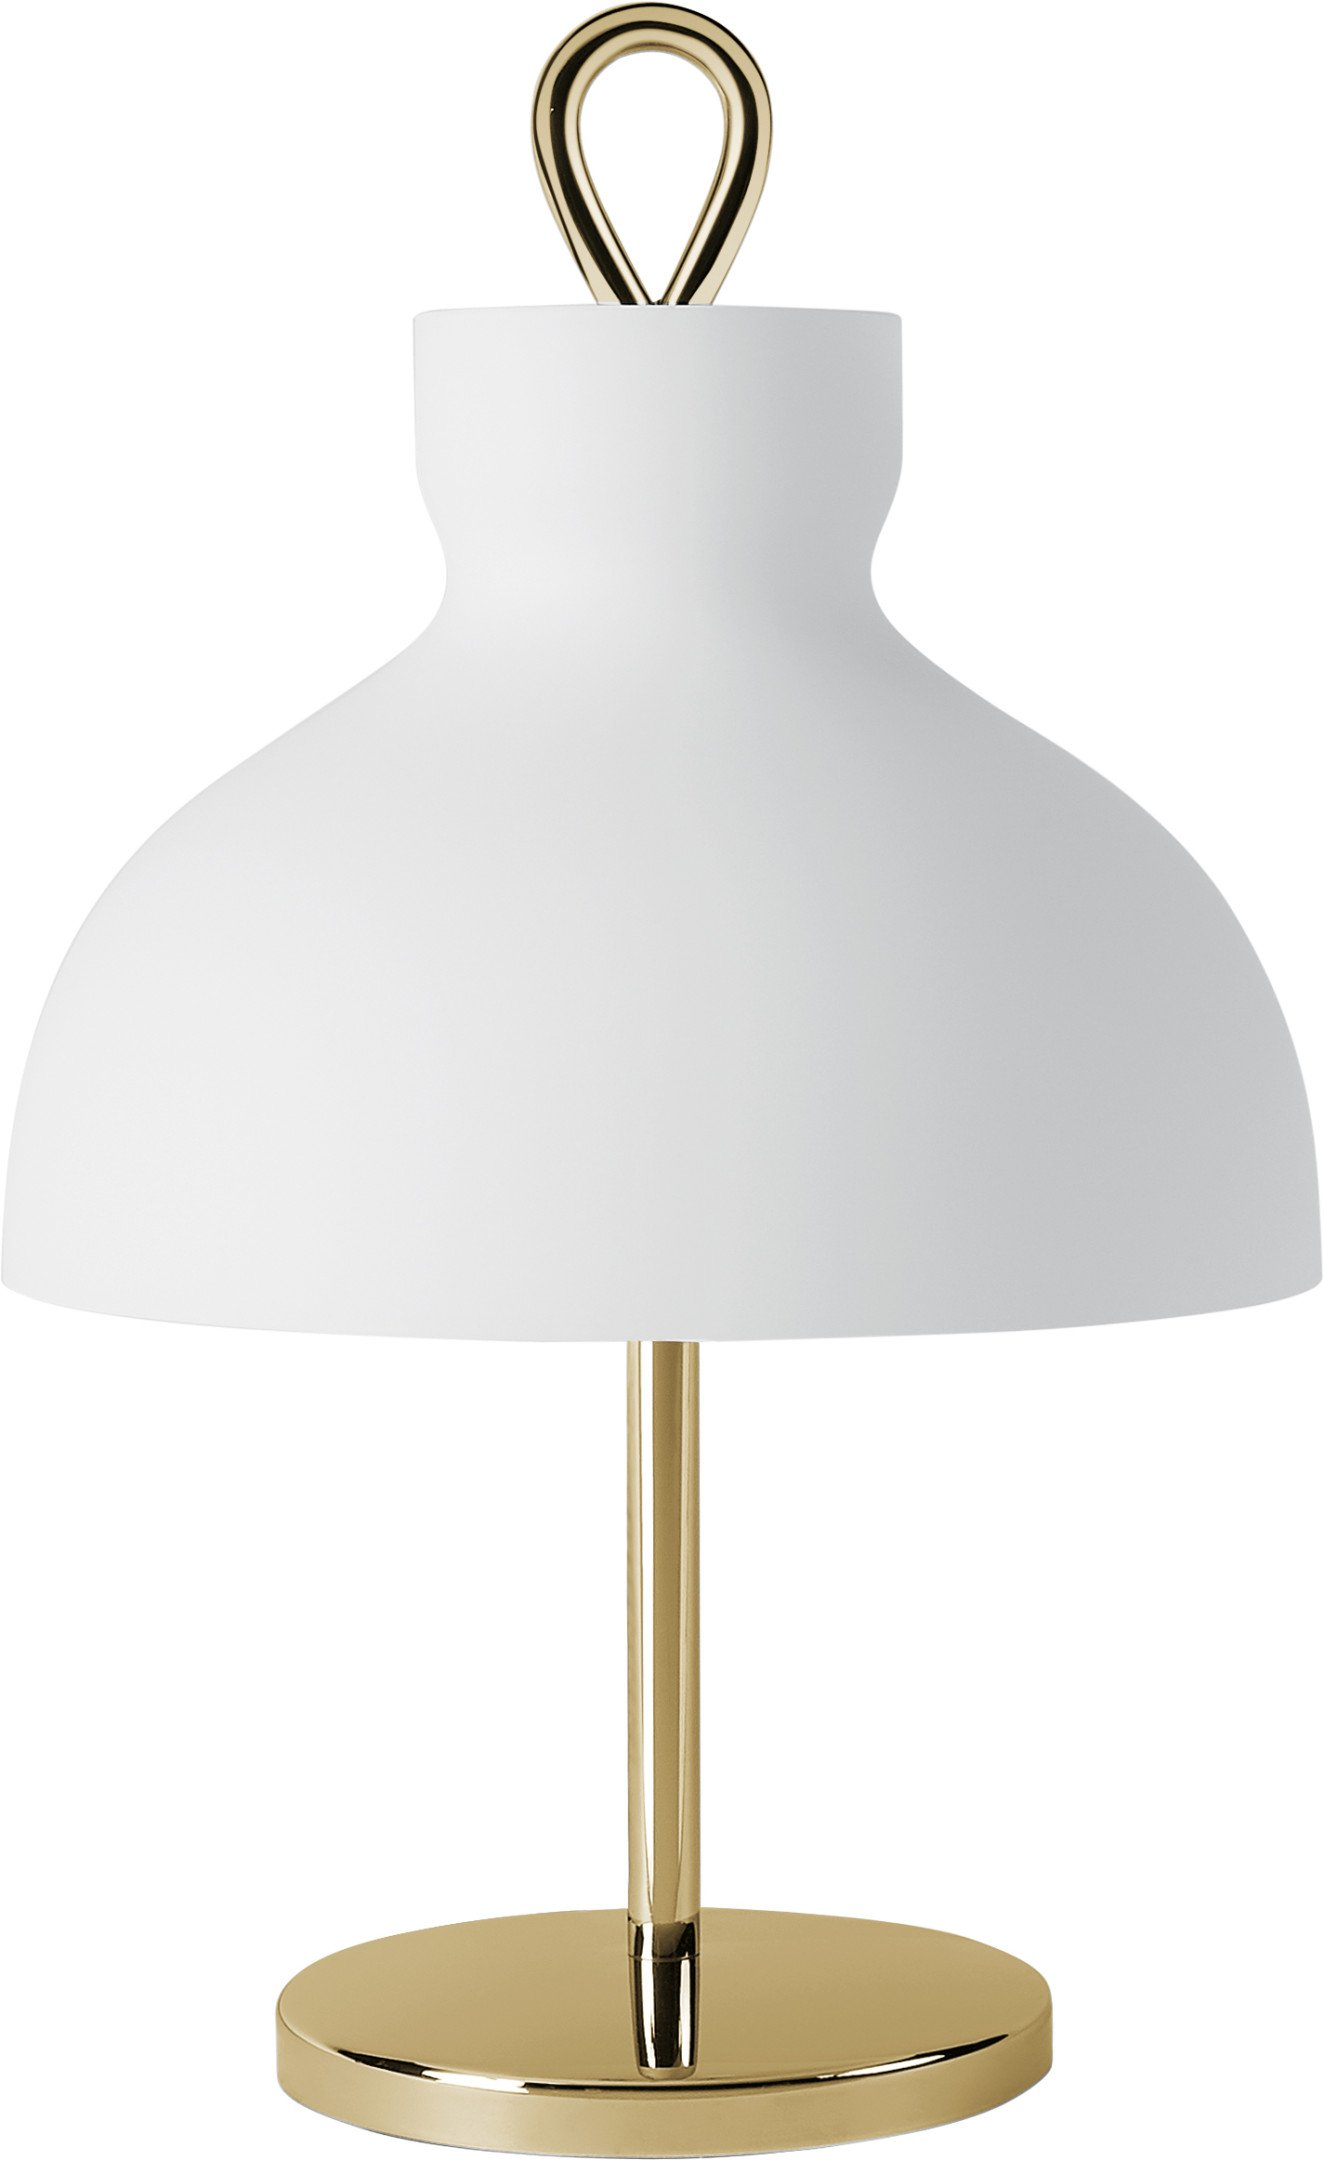 Small Brass Arenzano Table Lamp by I. Gardella for Tato Italia